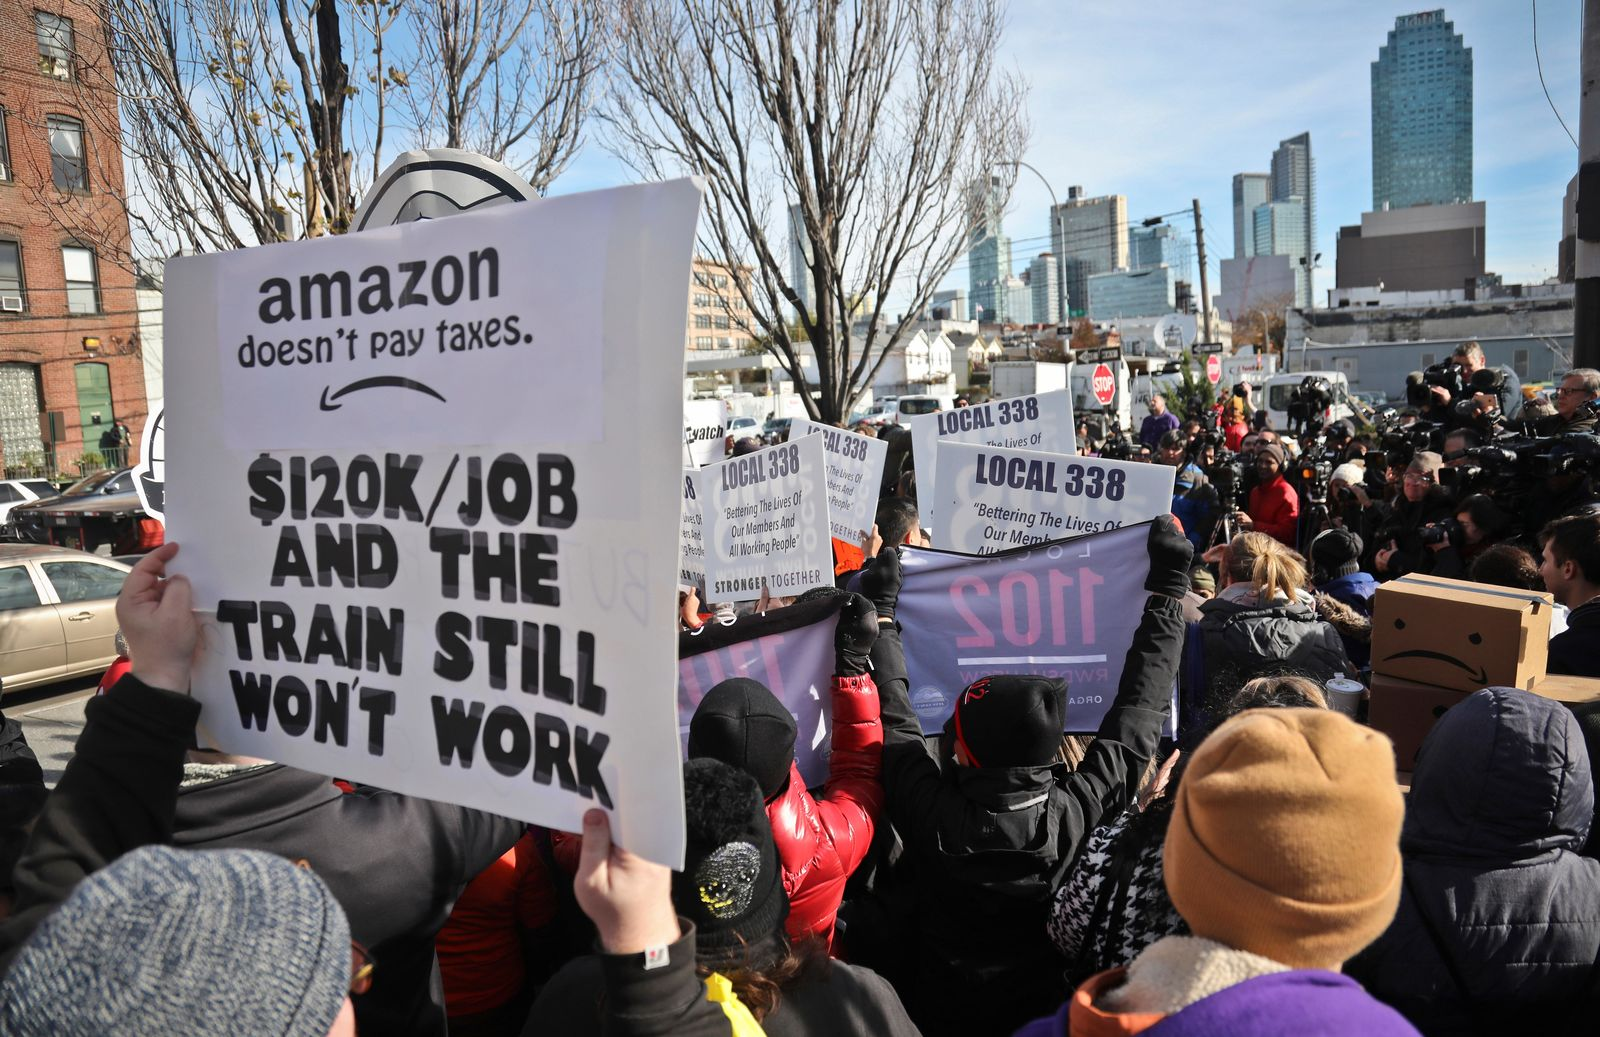 FILE - In this Nov. 14, 2018, file photo protesters carry anti-Amazon posters during a coalition rally and press conference opposing Amazon headquarters getting subsidies to locate in the New York neighborhood of Long Island City in the Queens borough of New York. Some residents wondered why one of the world's most valuable companies needed nearly $3 million in tax incentives to come to New York. (AP Photo/Bebeto Matthews, File)